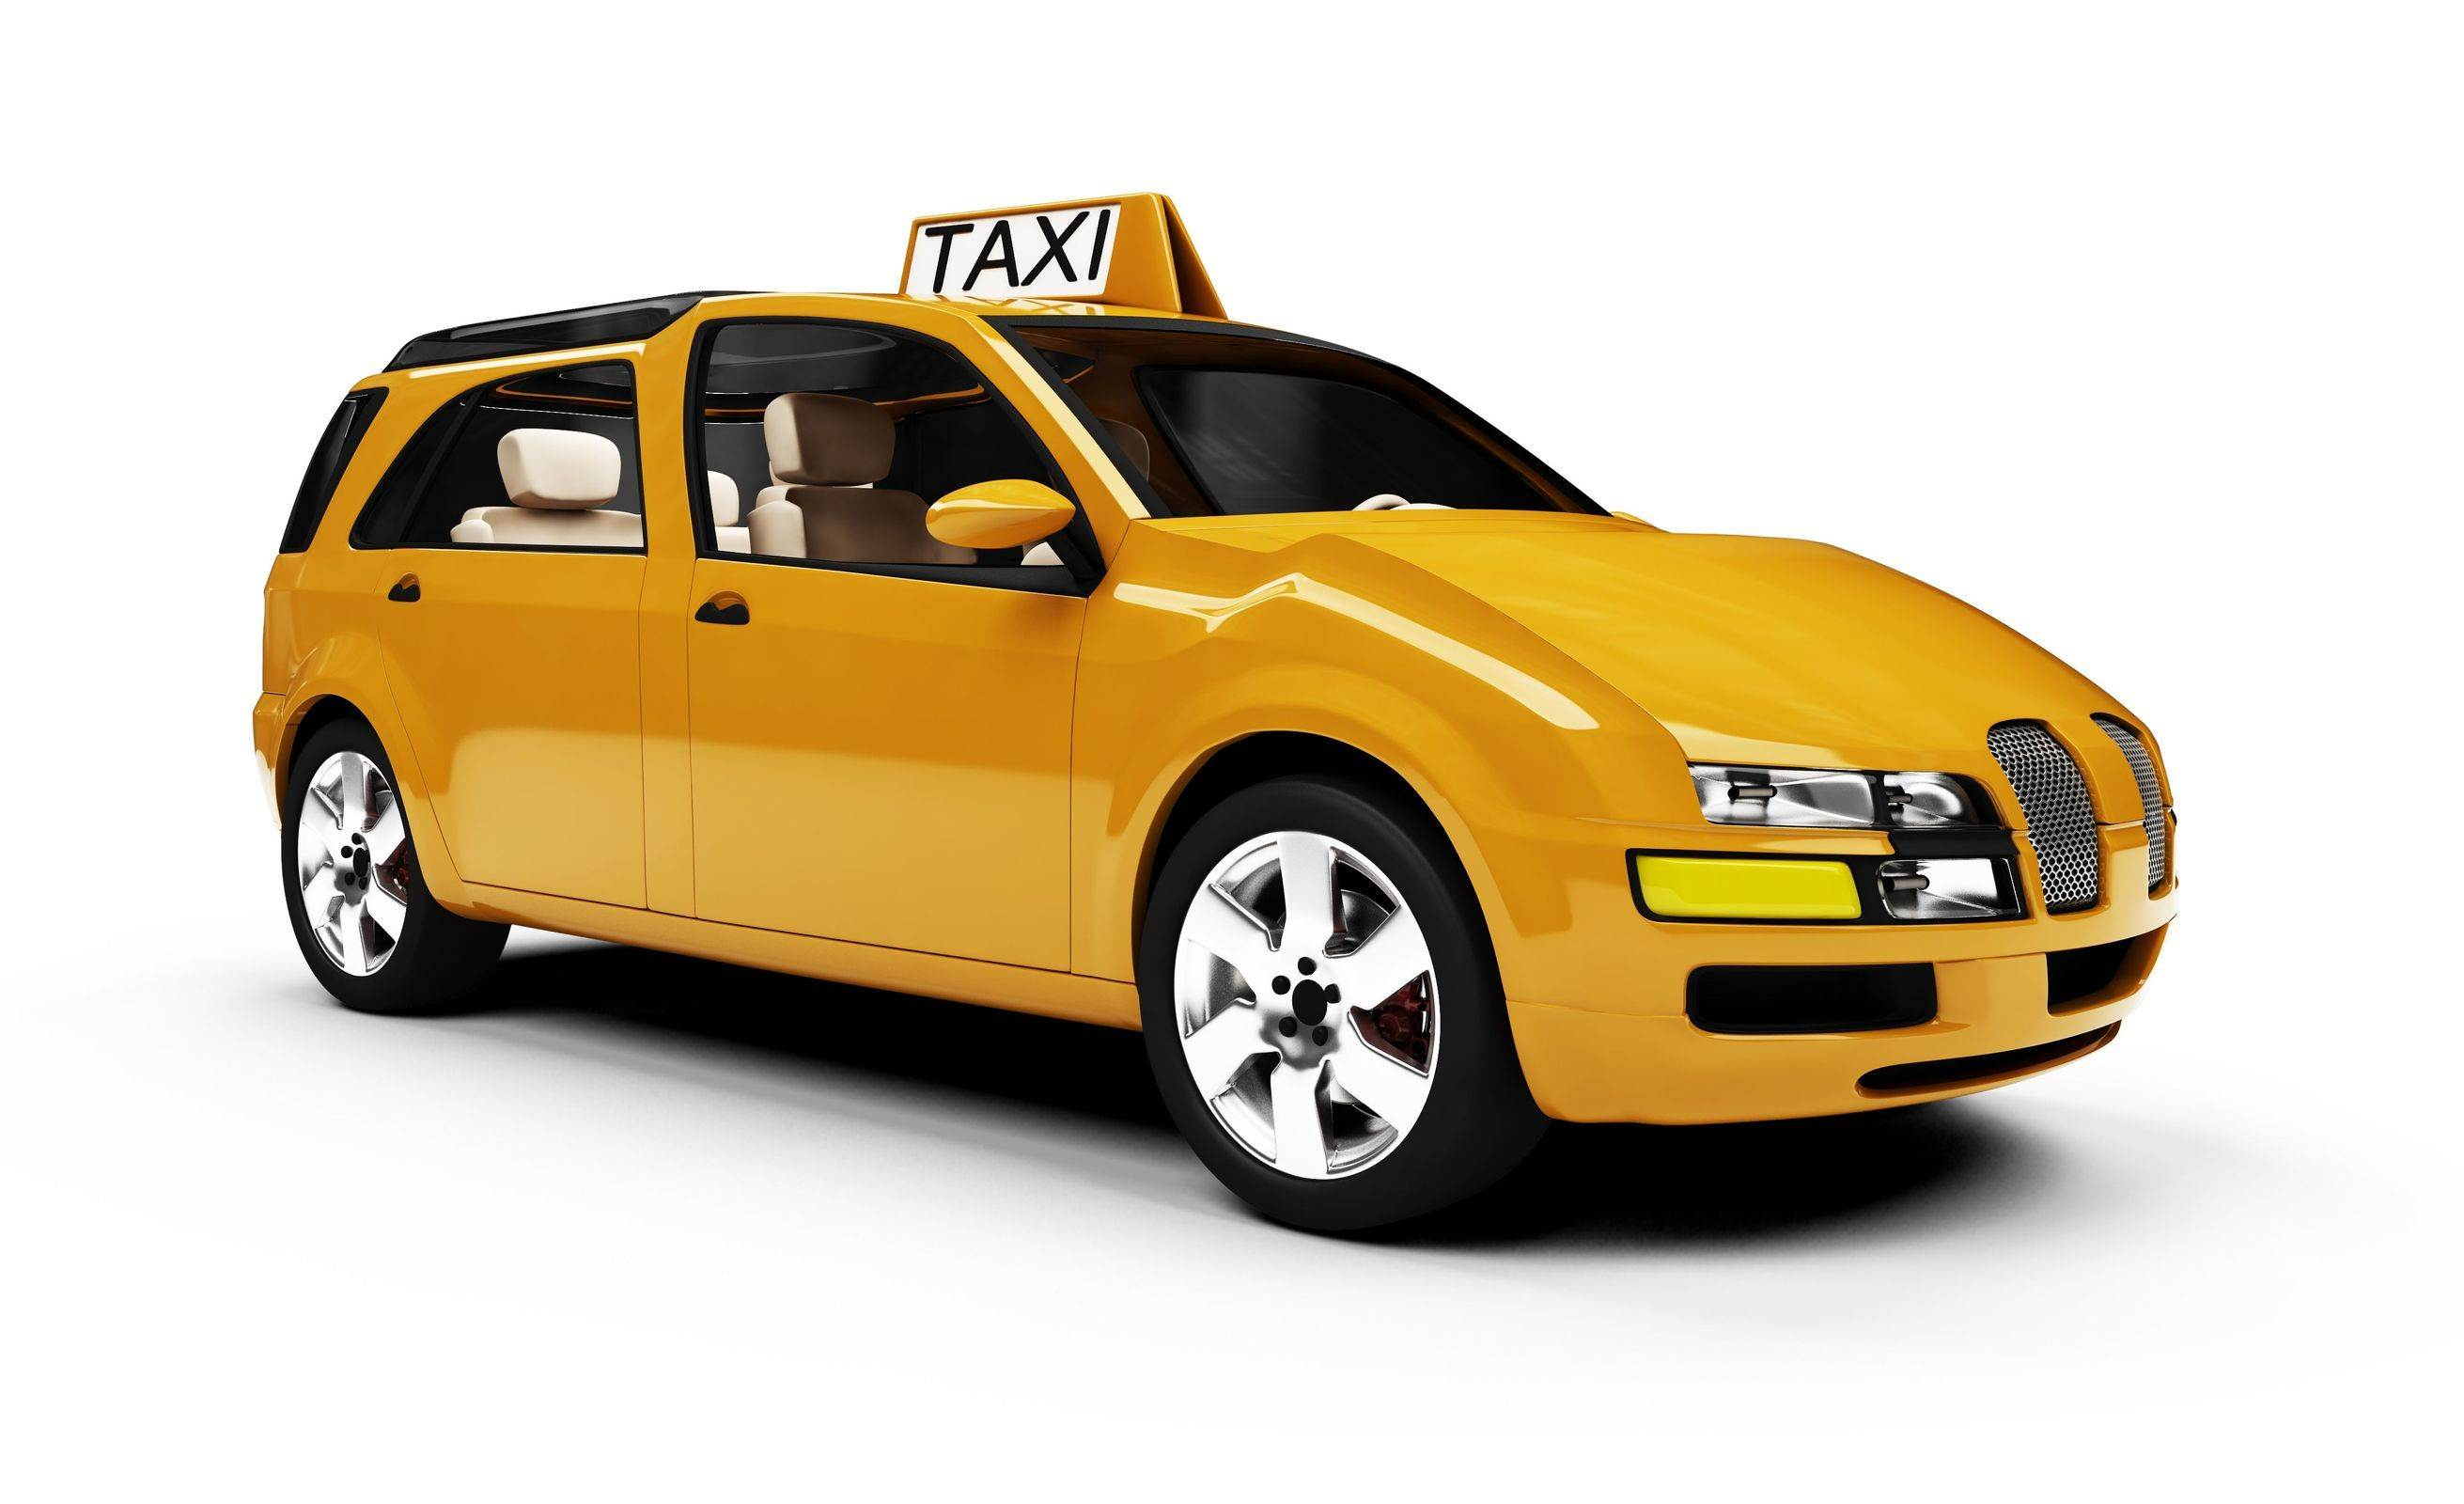 Tips for Choosing A Good Taxi Service